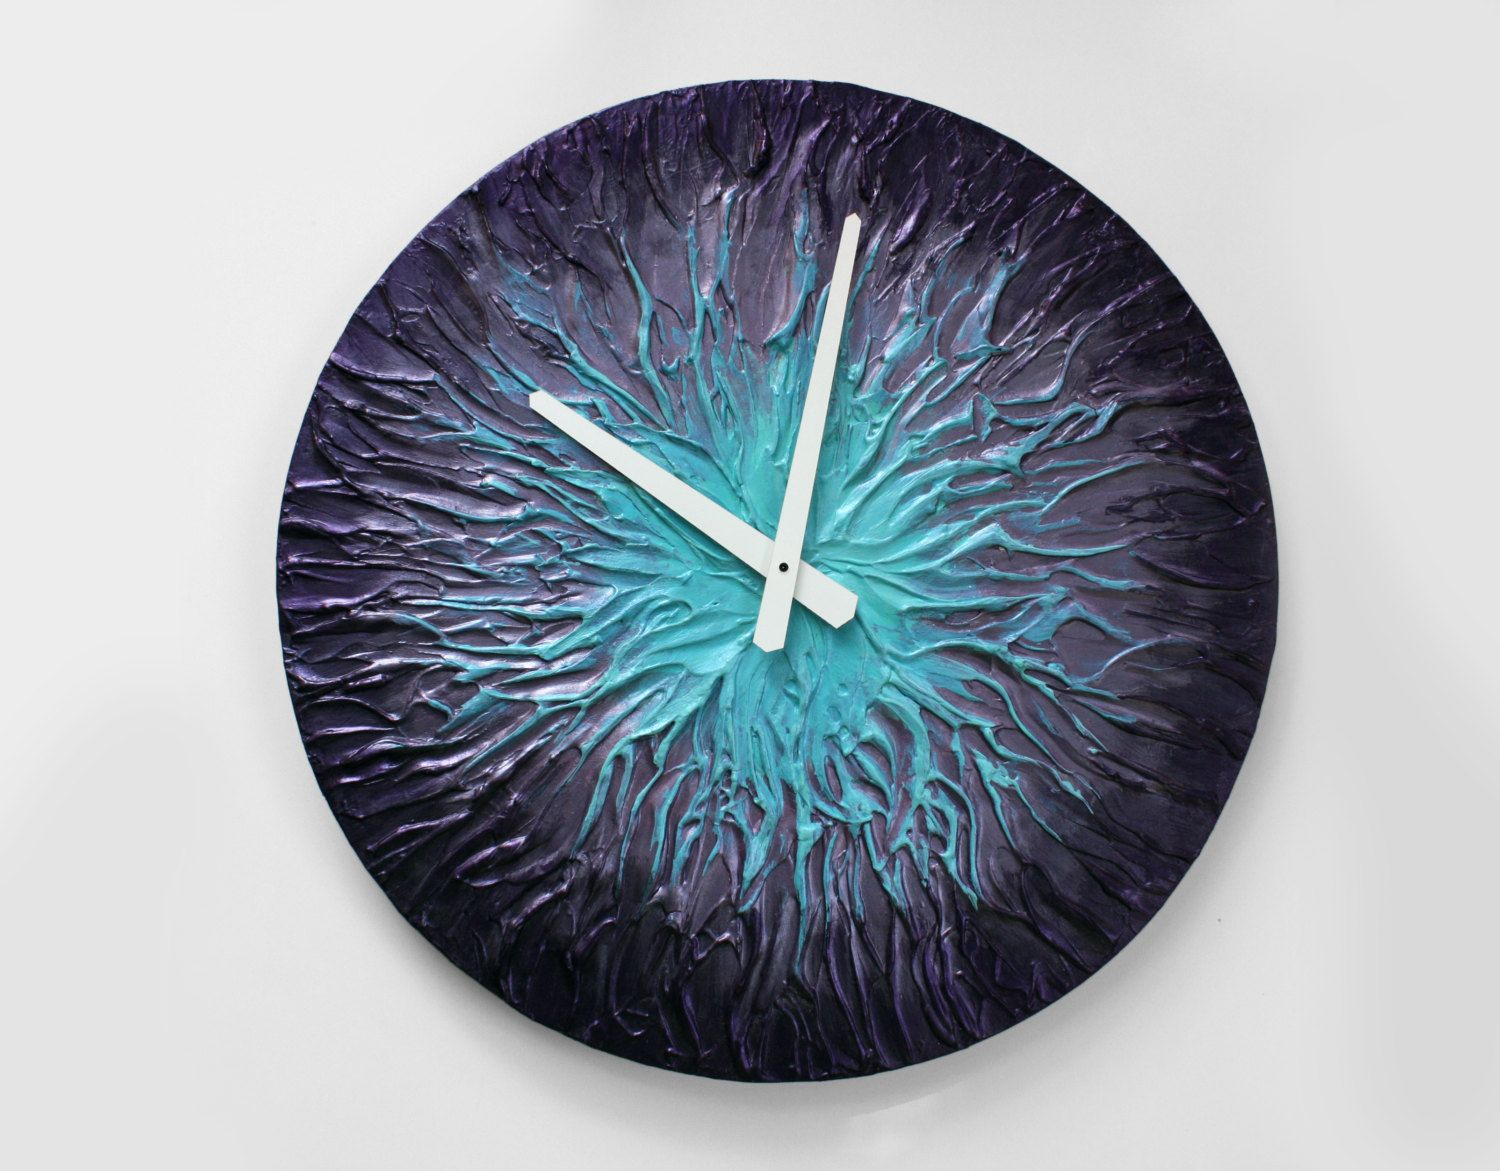 Original painting large wall clock unique wall clock purple wall original painting large wall clock unique wall clock purple wall decor metallic purple turquoise home decor modern wall clock men cave amipublicfo Image collections